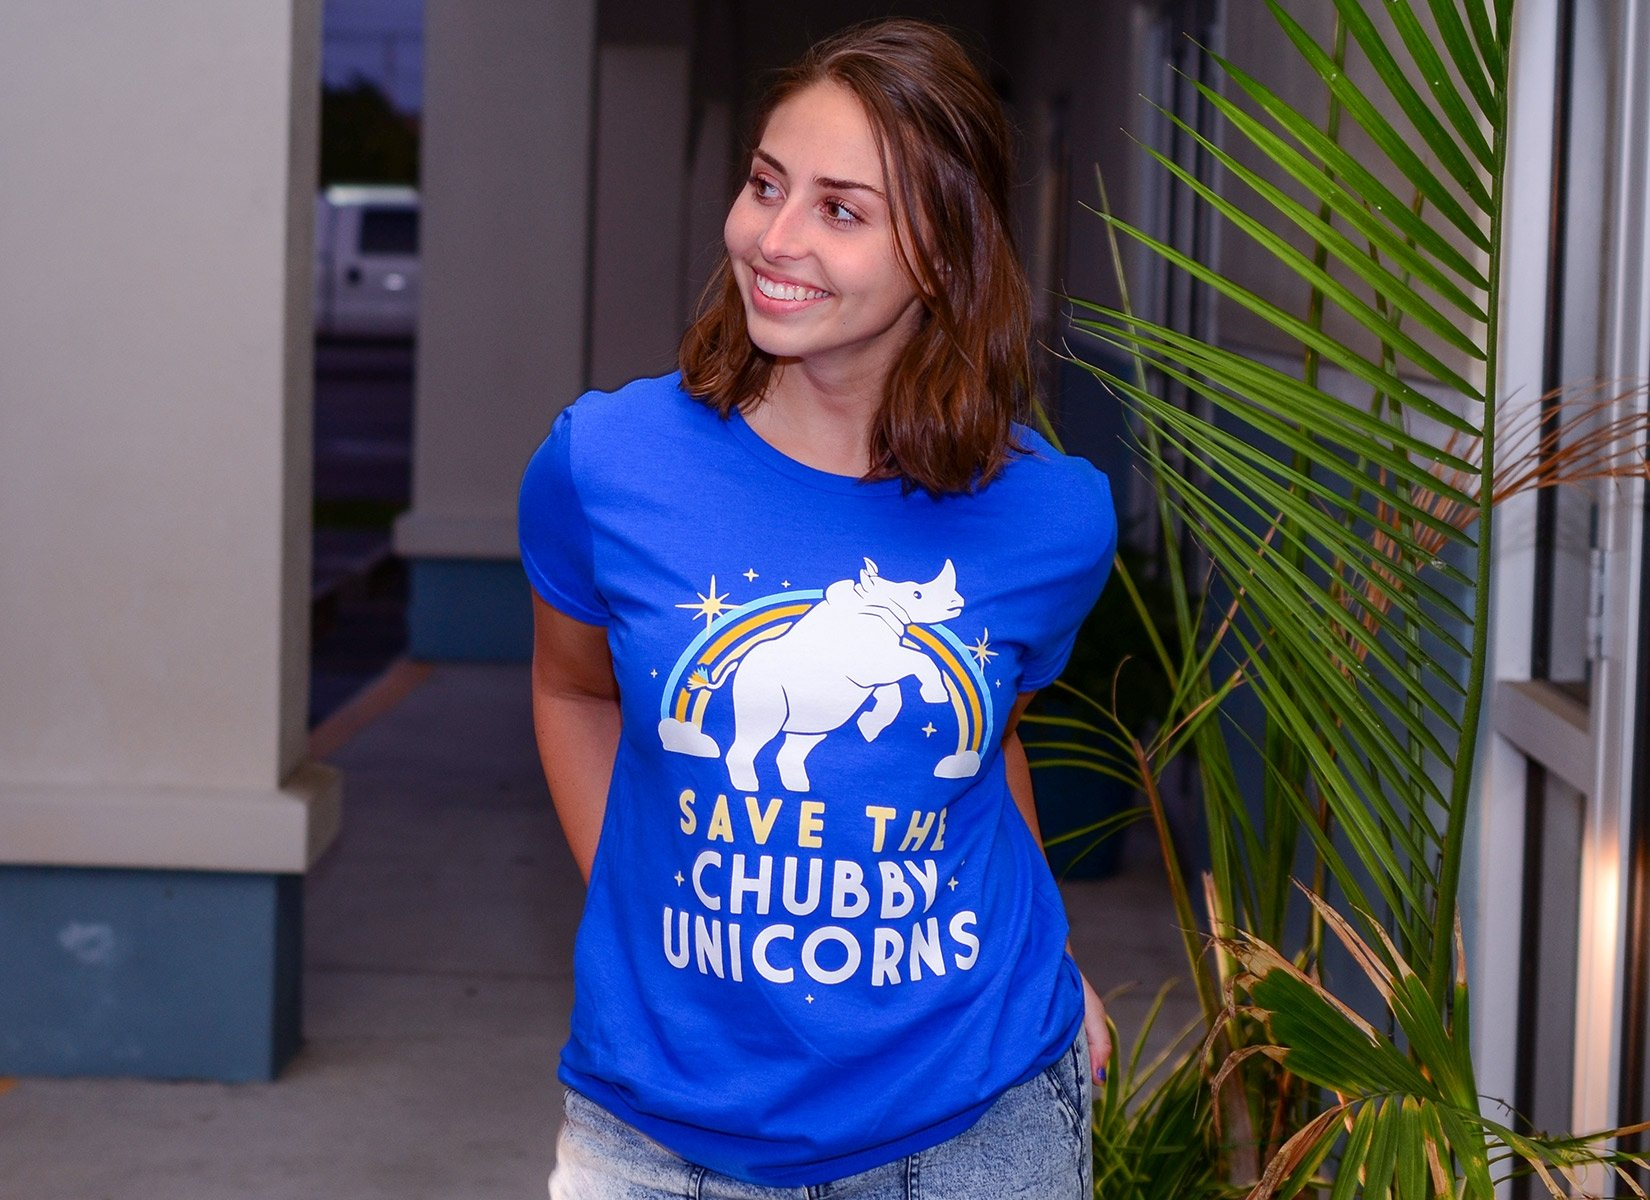 Save The Chubby Unicorns on Womens T-Shirt